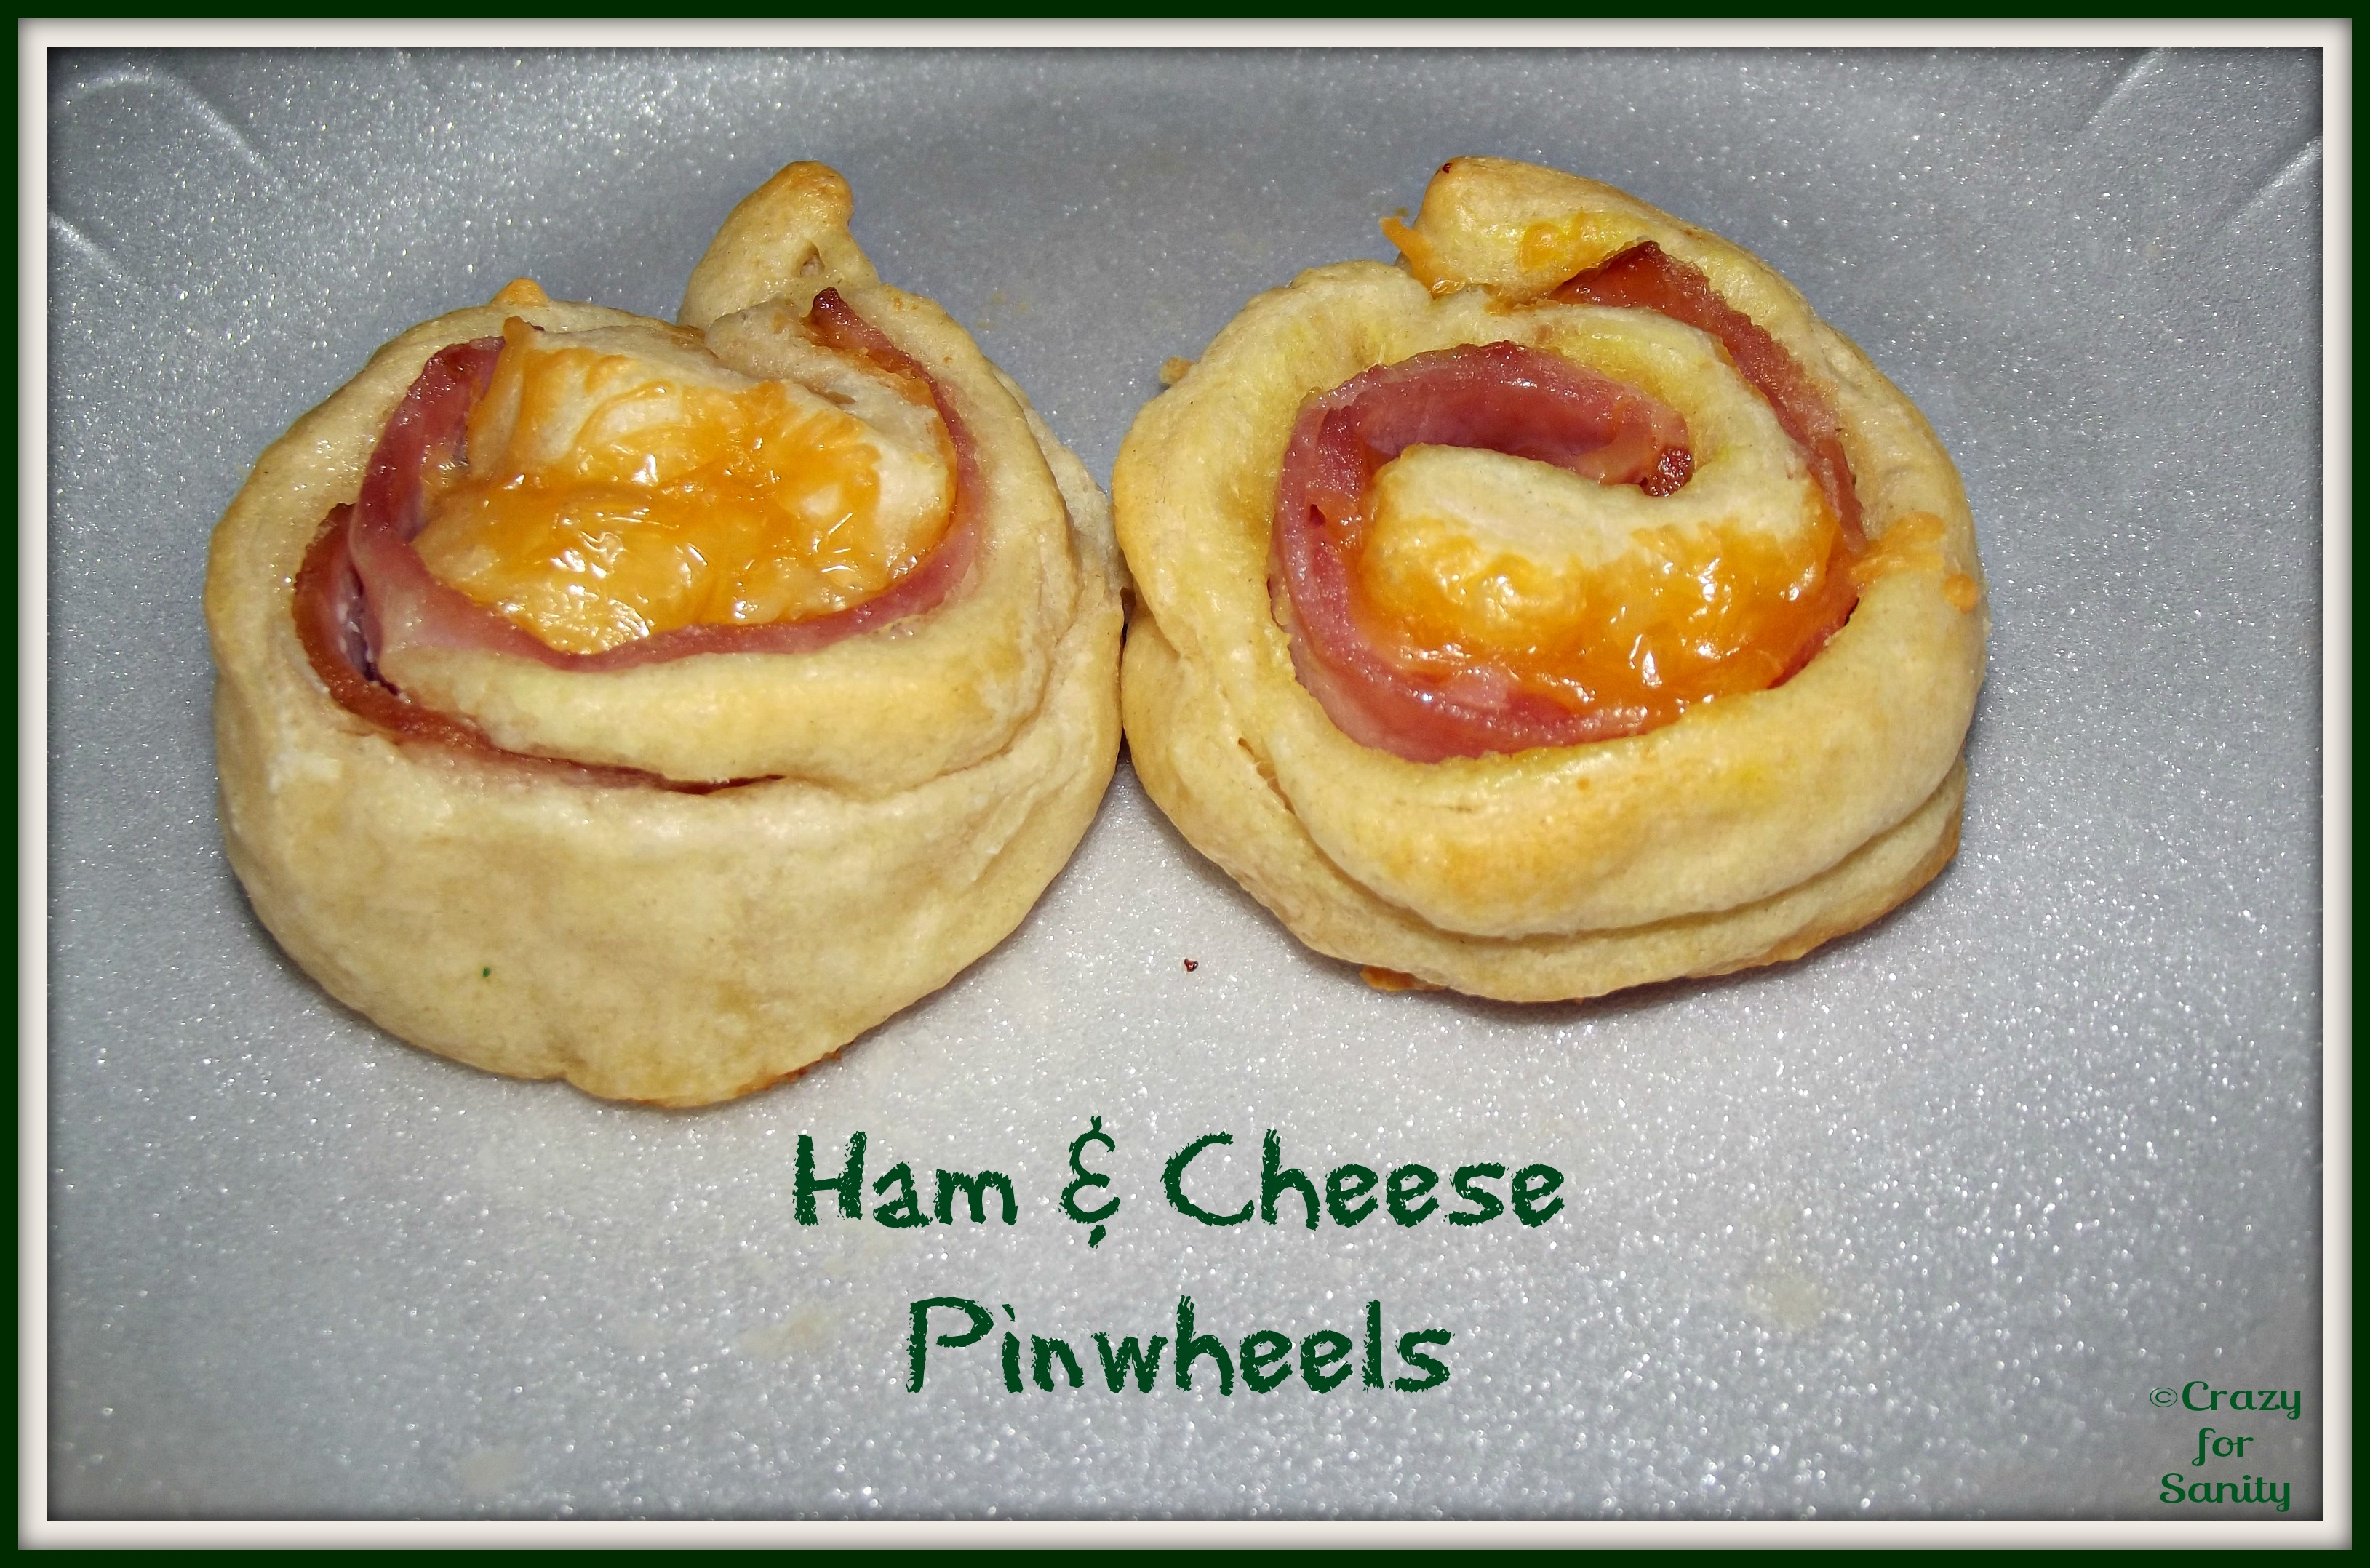 Particular Sanity Ham Toddlers Cheese Pinwheels Cheese Pinwheels Delish Ham Busy Ham Cheese Pinwheels Crazy Ham Cheese Pinwheels Recipe nice food Ham And Cheese Pinwheels